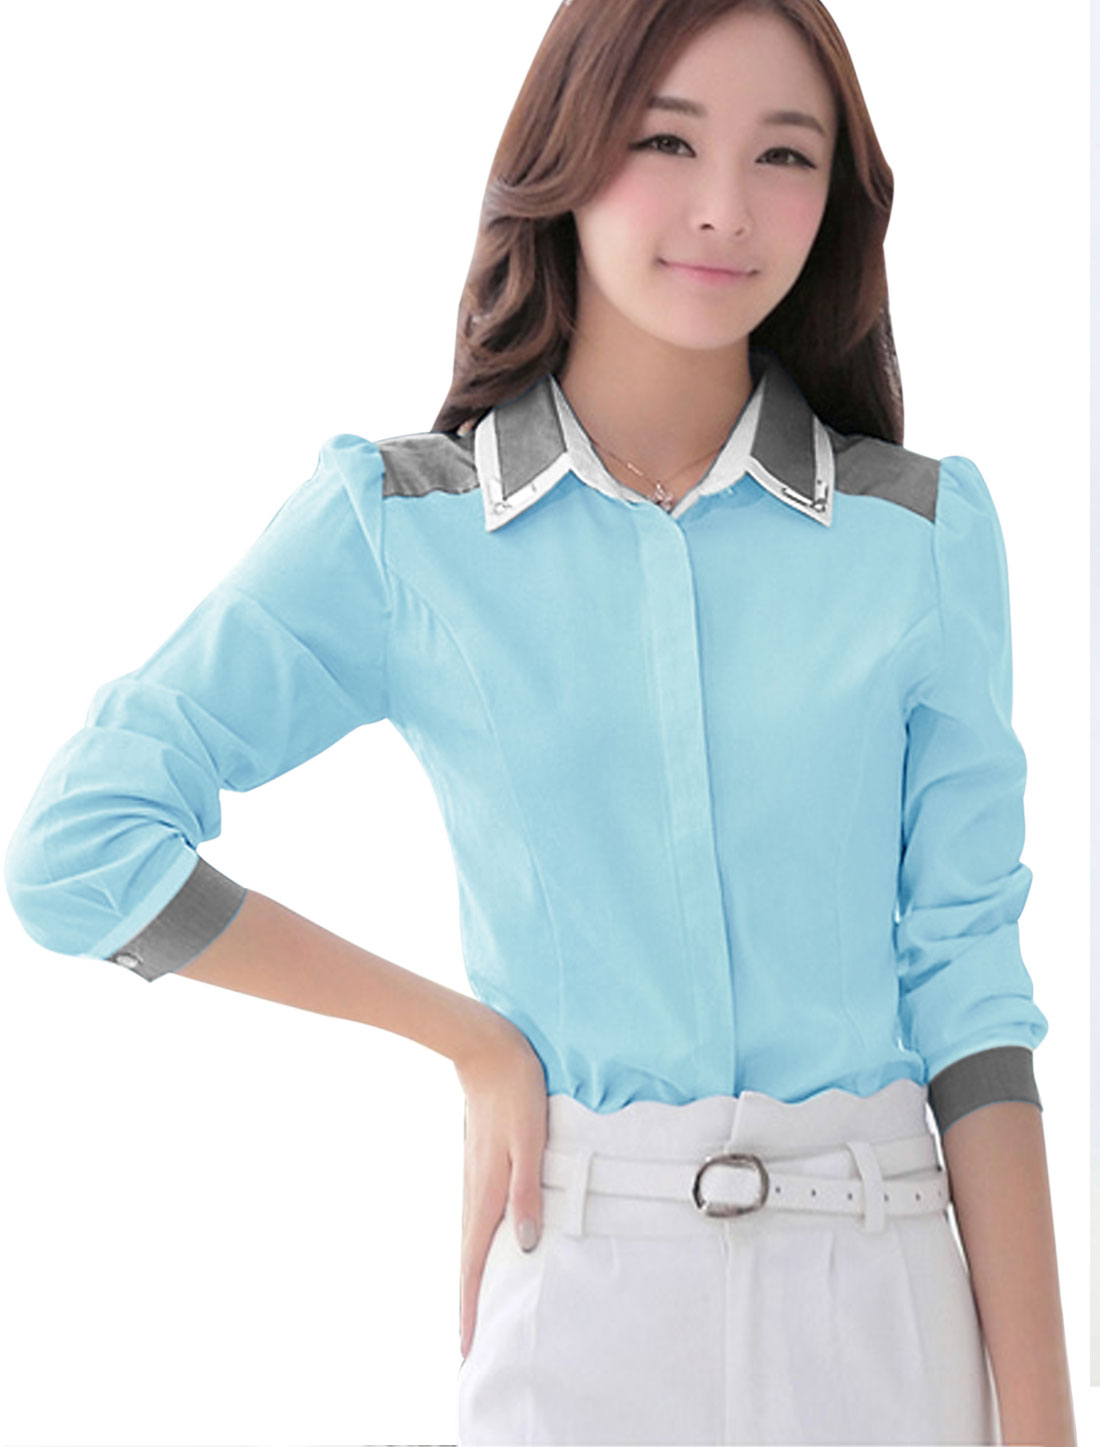 Ladies Single Breasted Button Cuffs Long Sleeves Light Blue Shirt M